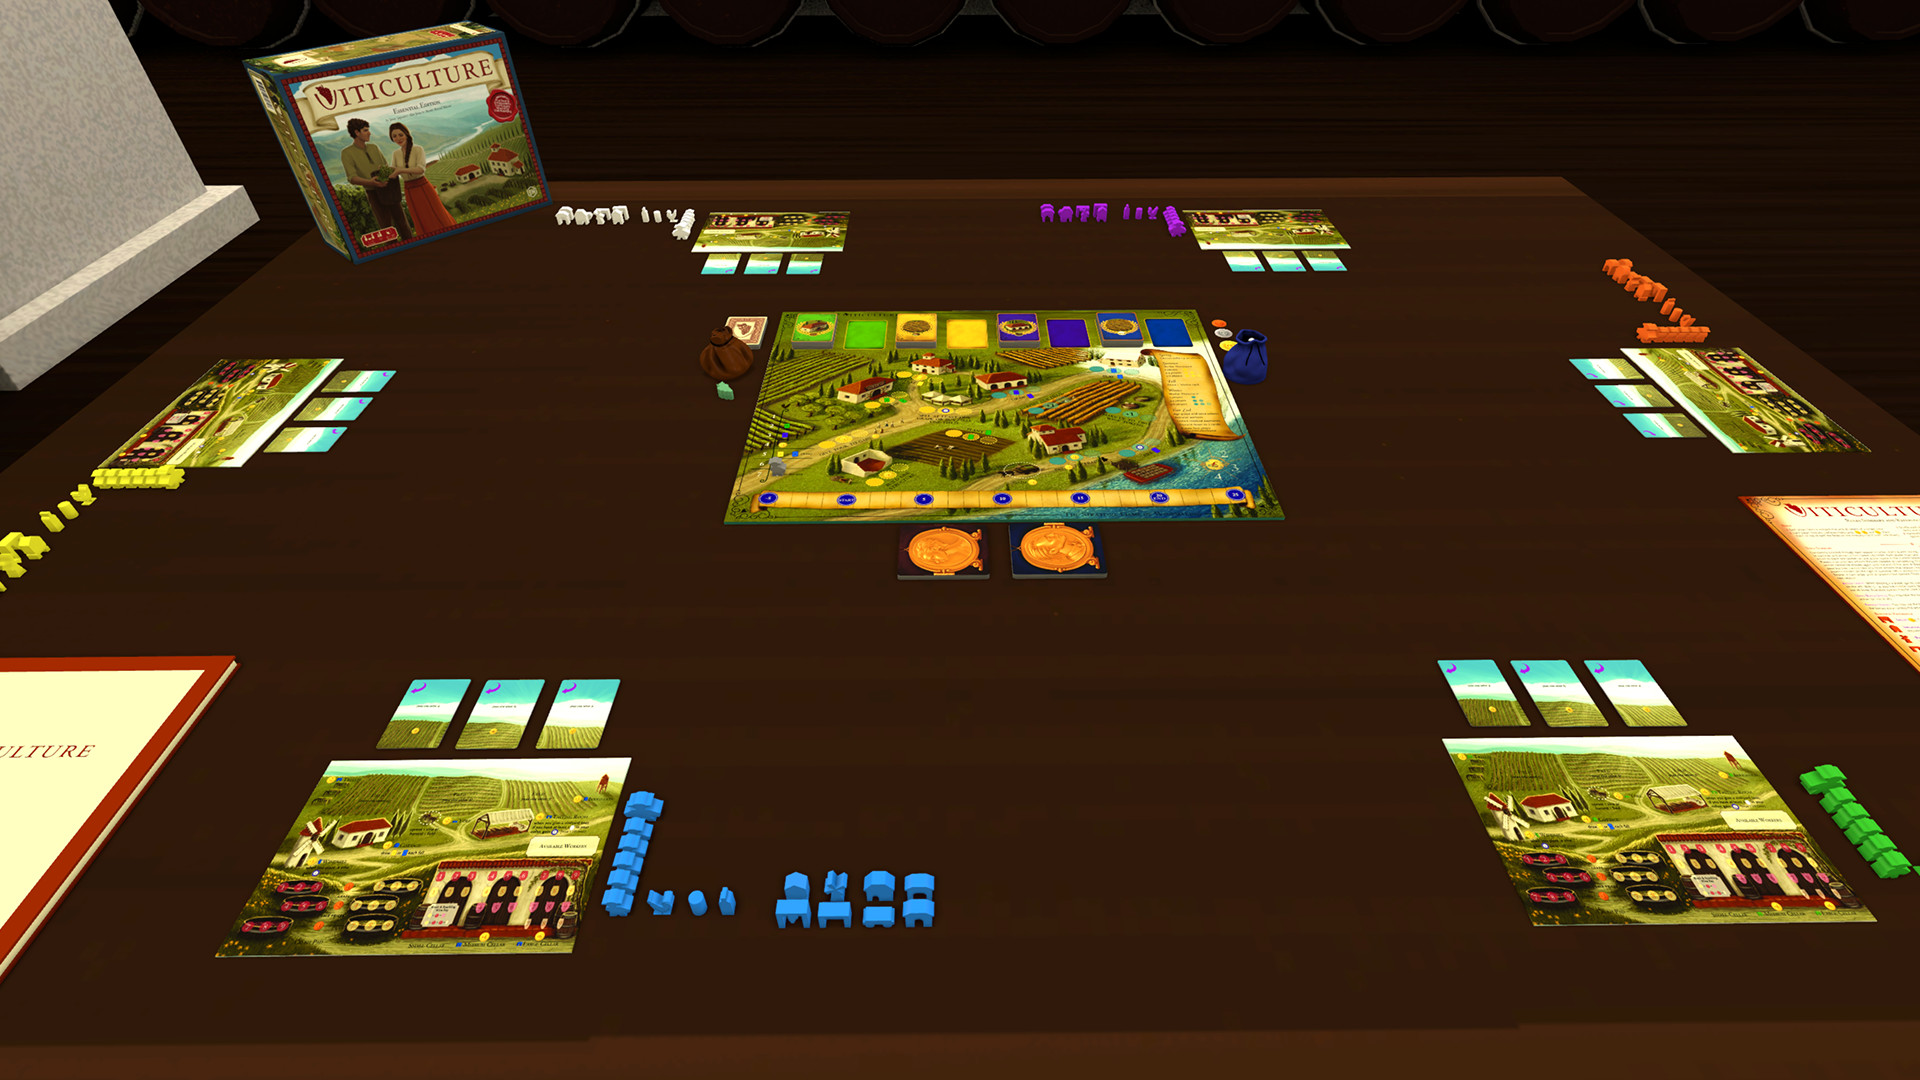 tabletop-simulator-viticulture-download-for-free